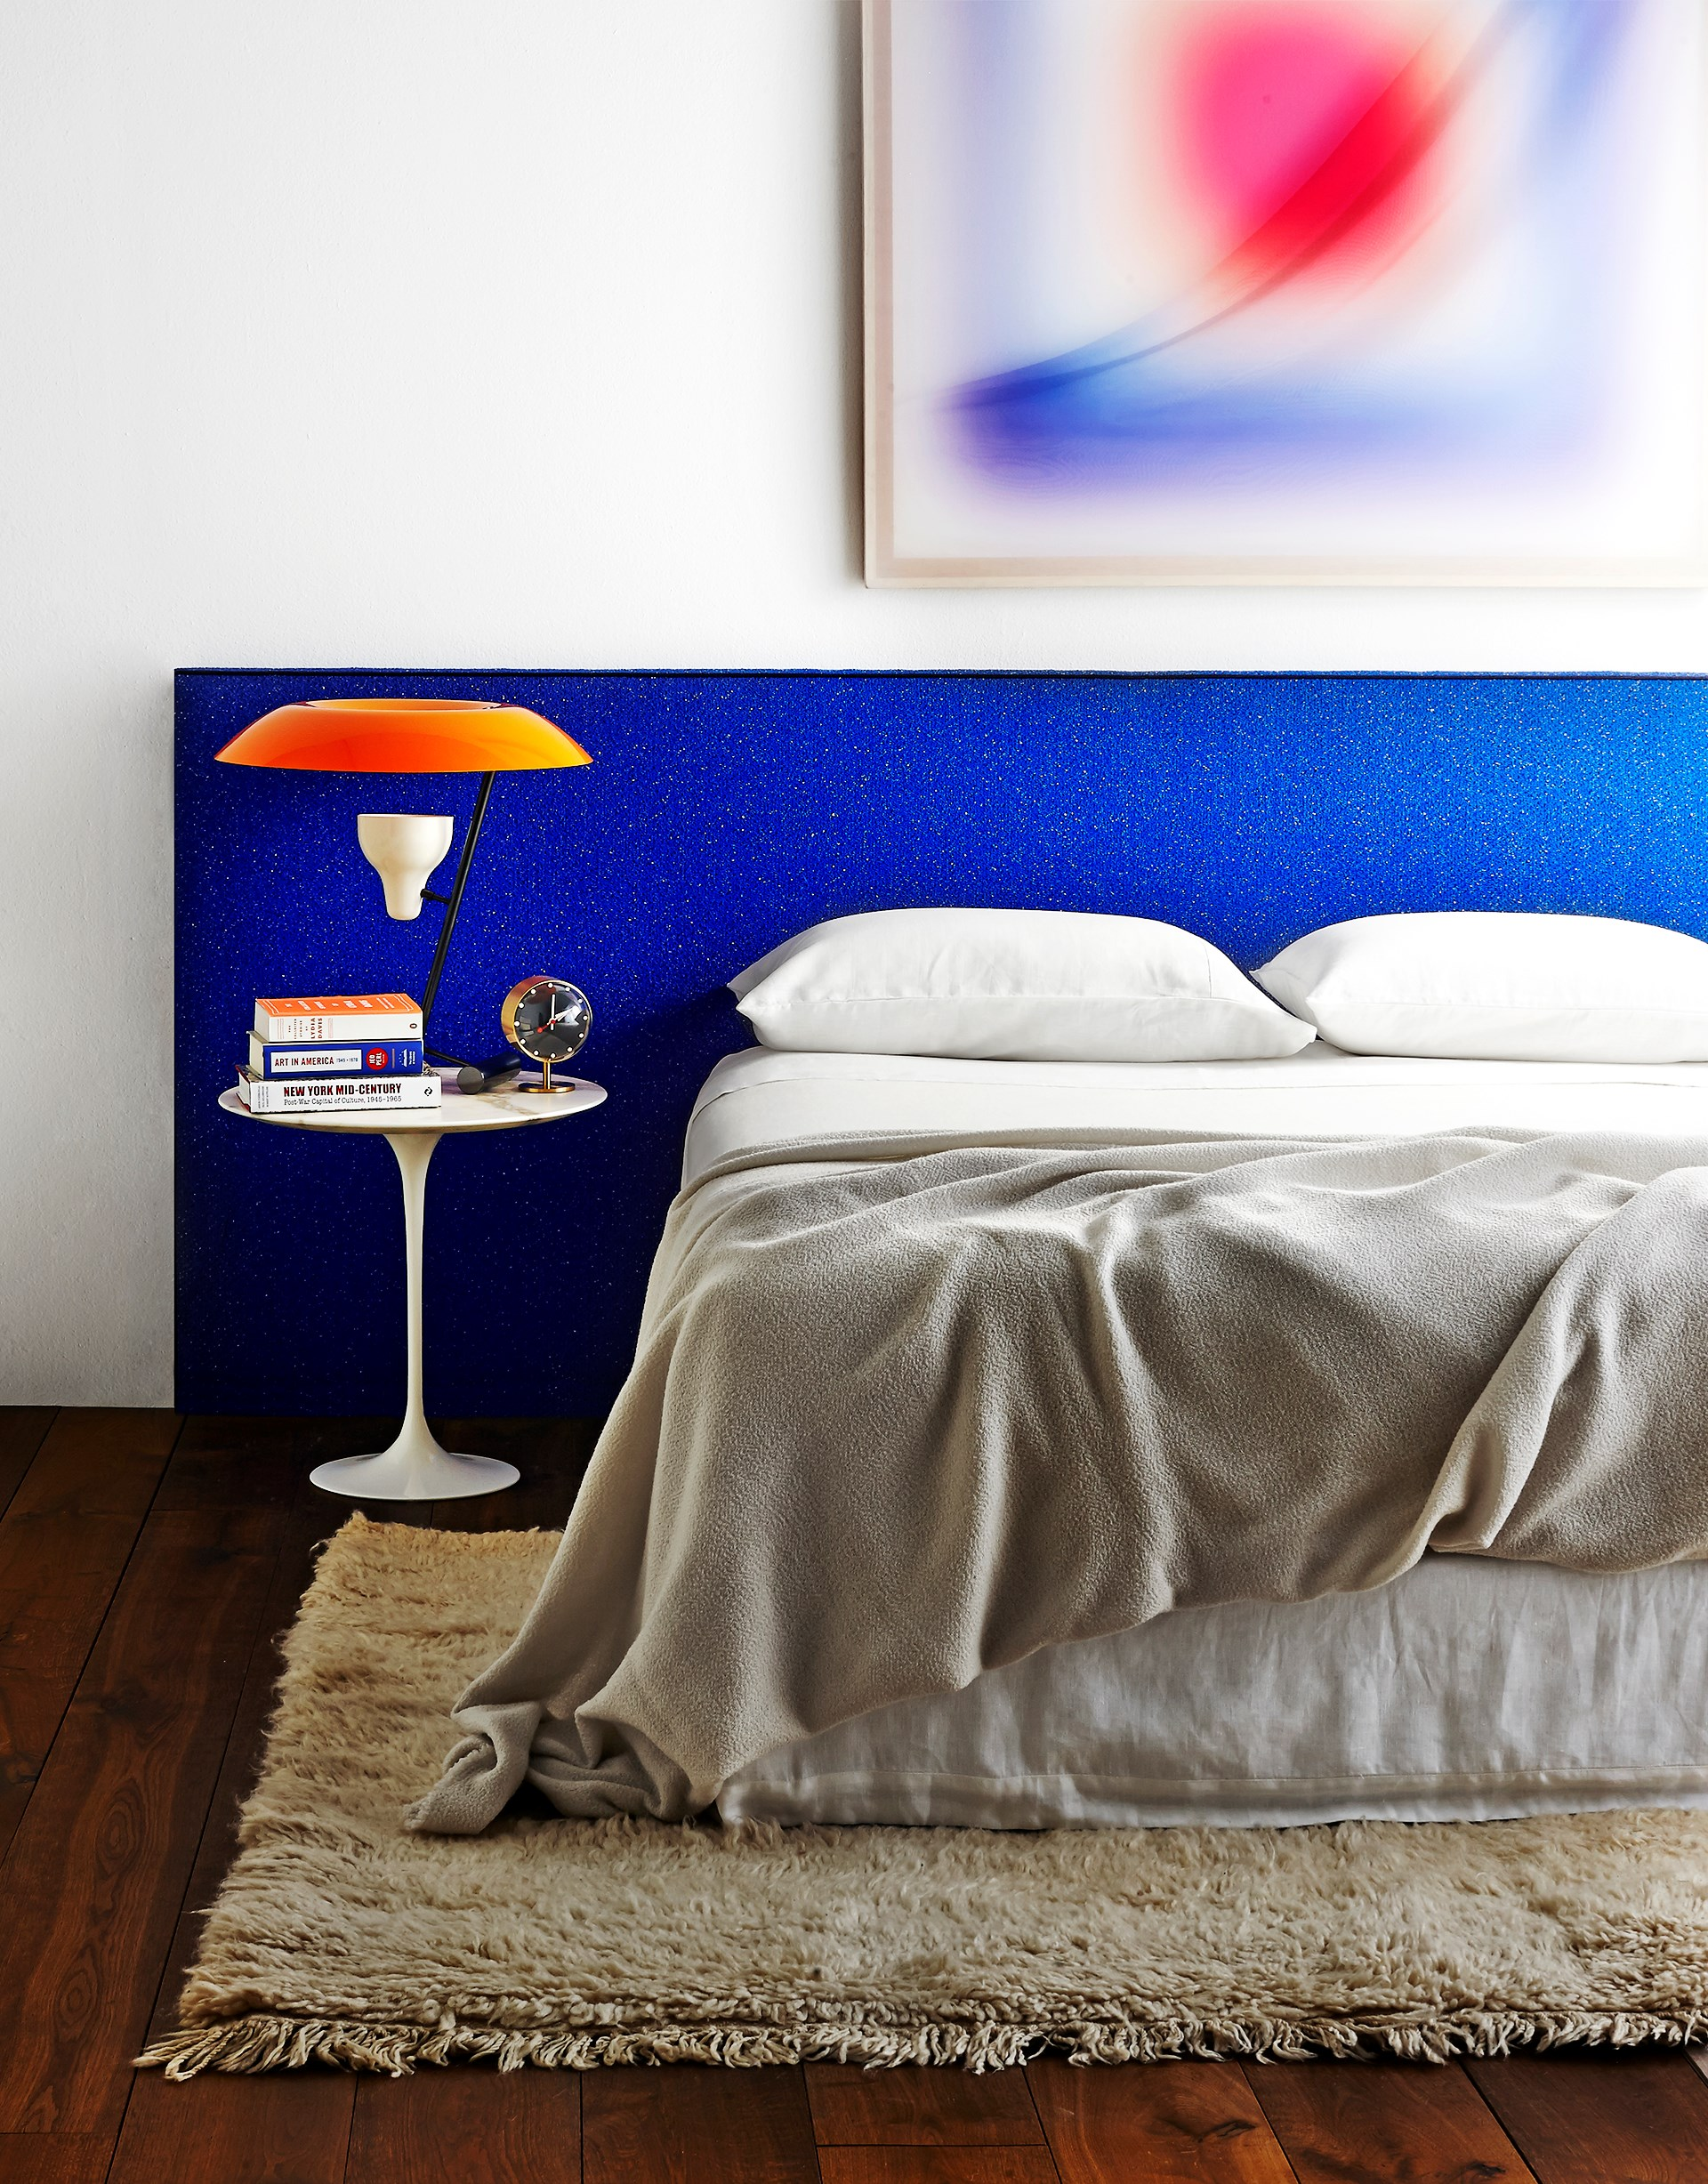 """Bright blue brings an electric pop to the neutral base palette in this bedroom.   Ralston **bedhead** from [Heatherly Design](http://www.heatherlydesign.com.au/ target=""""_blank"""", upholstered in Raf Simons for Kvadrat Pilot fabric from [Maharam](http://www.maharam.com/ target=""""_blank""""). *Hammock Painting I* **artwork** by Jonny Niesche from [Minerva](http://www.minervasydney.com/ target=""""_blank""""). KnollStudio Saarinen side **table** from [Dedece](http://www.dedece.com/ target=""""_blank""""). Flos Mod 548 **table lamp** from [Euroluce](http://www.euroluce.com.au/ target=""""_blank""""). Beni Ourain wool **rug** from [Jason Mowen](http://www.jasonmowen.com/ target=""""_blank"""")."""